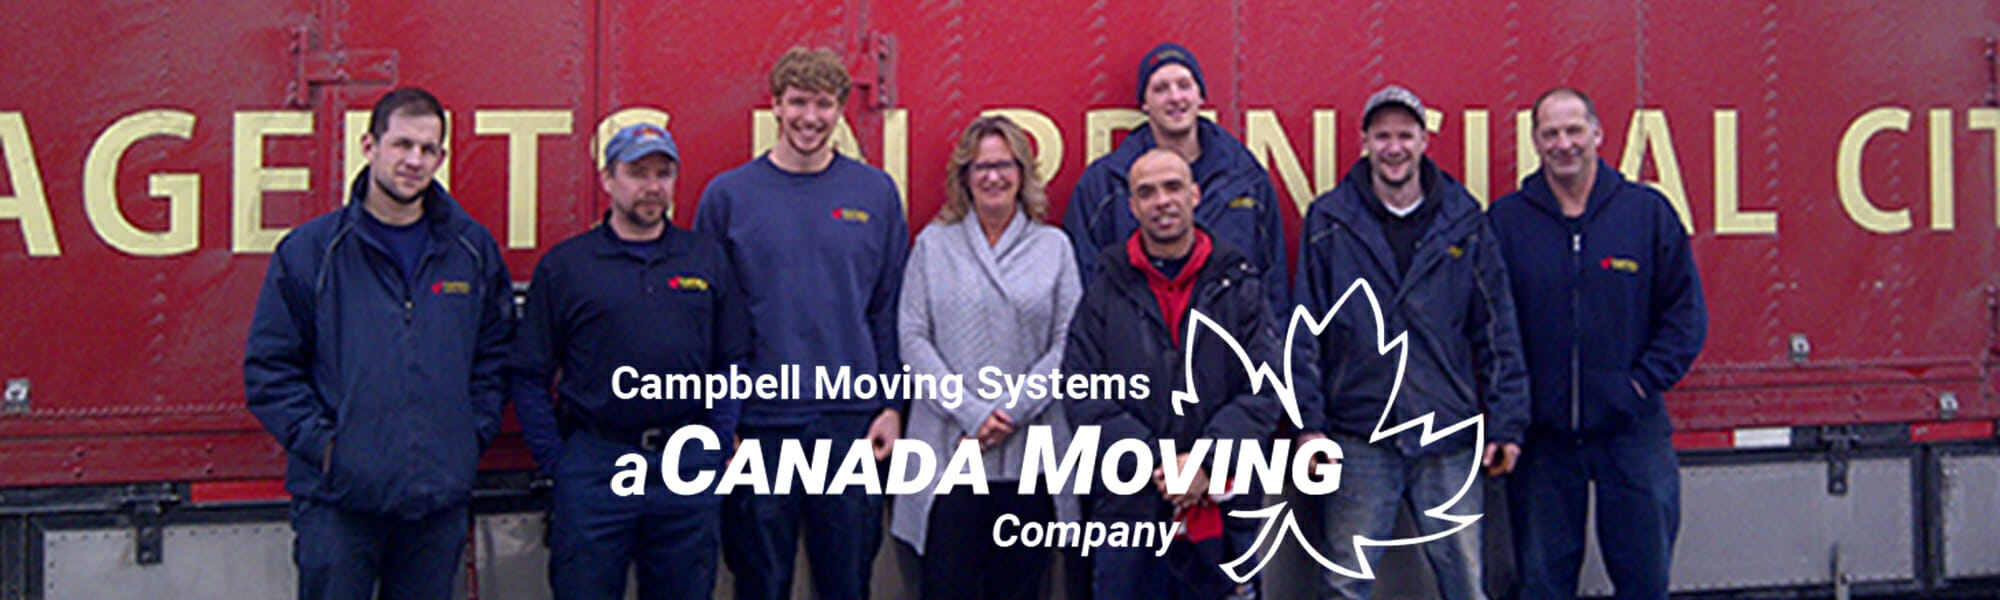 Stittsville-Campbell-Canada-Moving